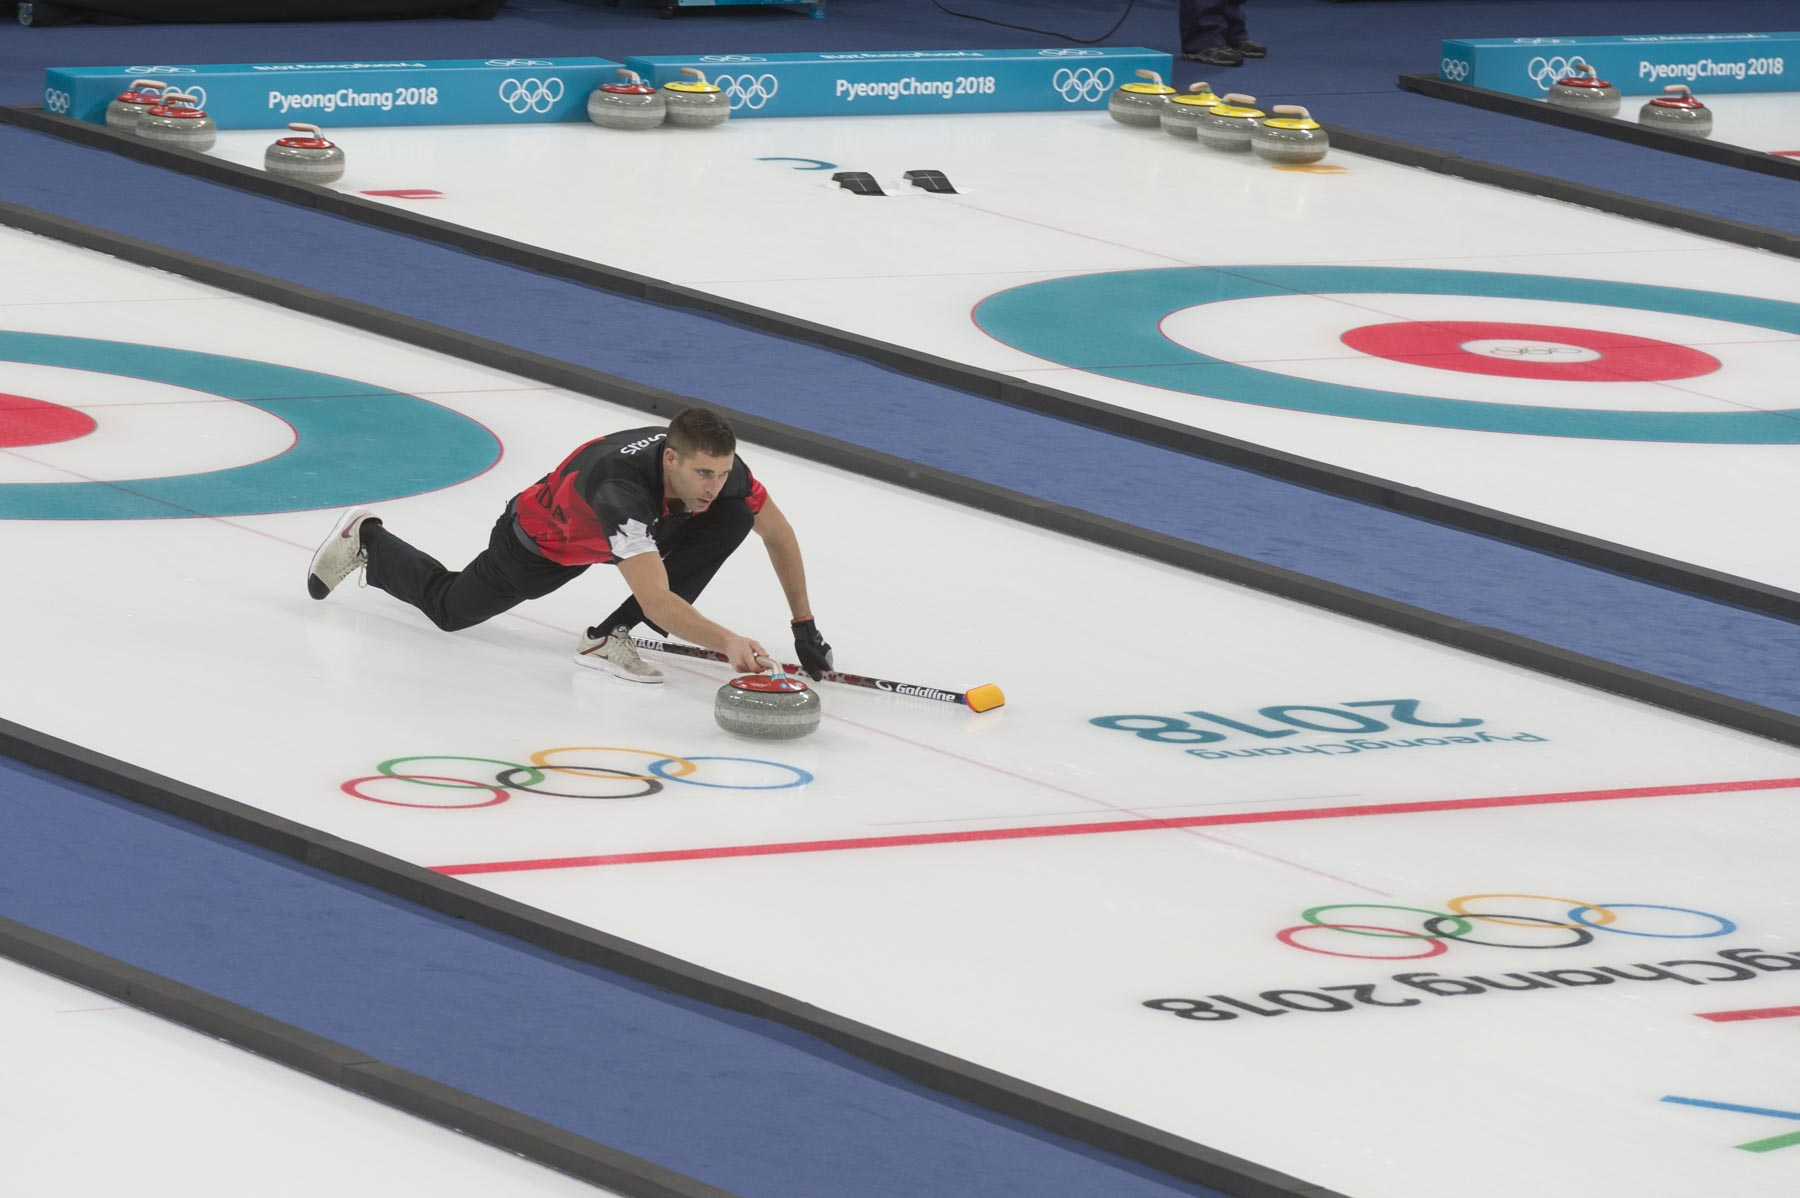 Mixed doubles curling made its Olympic debut in the PyeongChang Olympics.